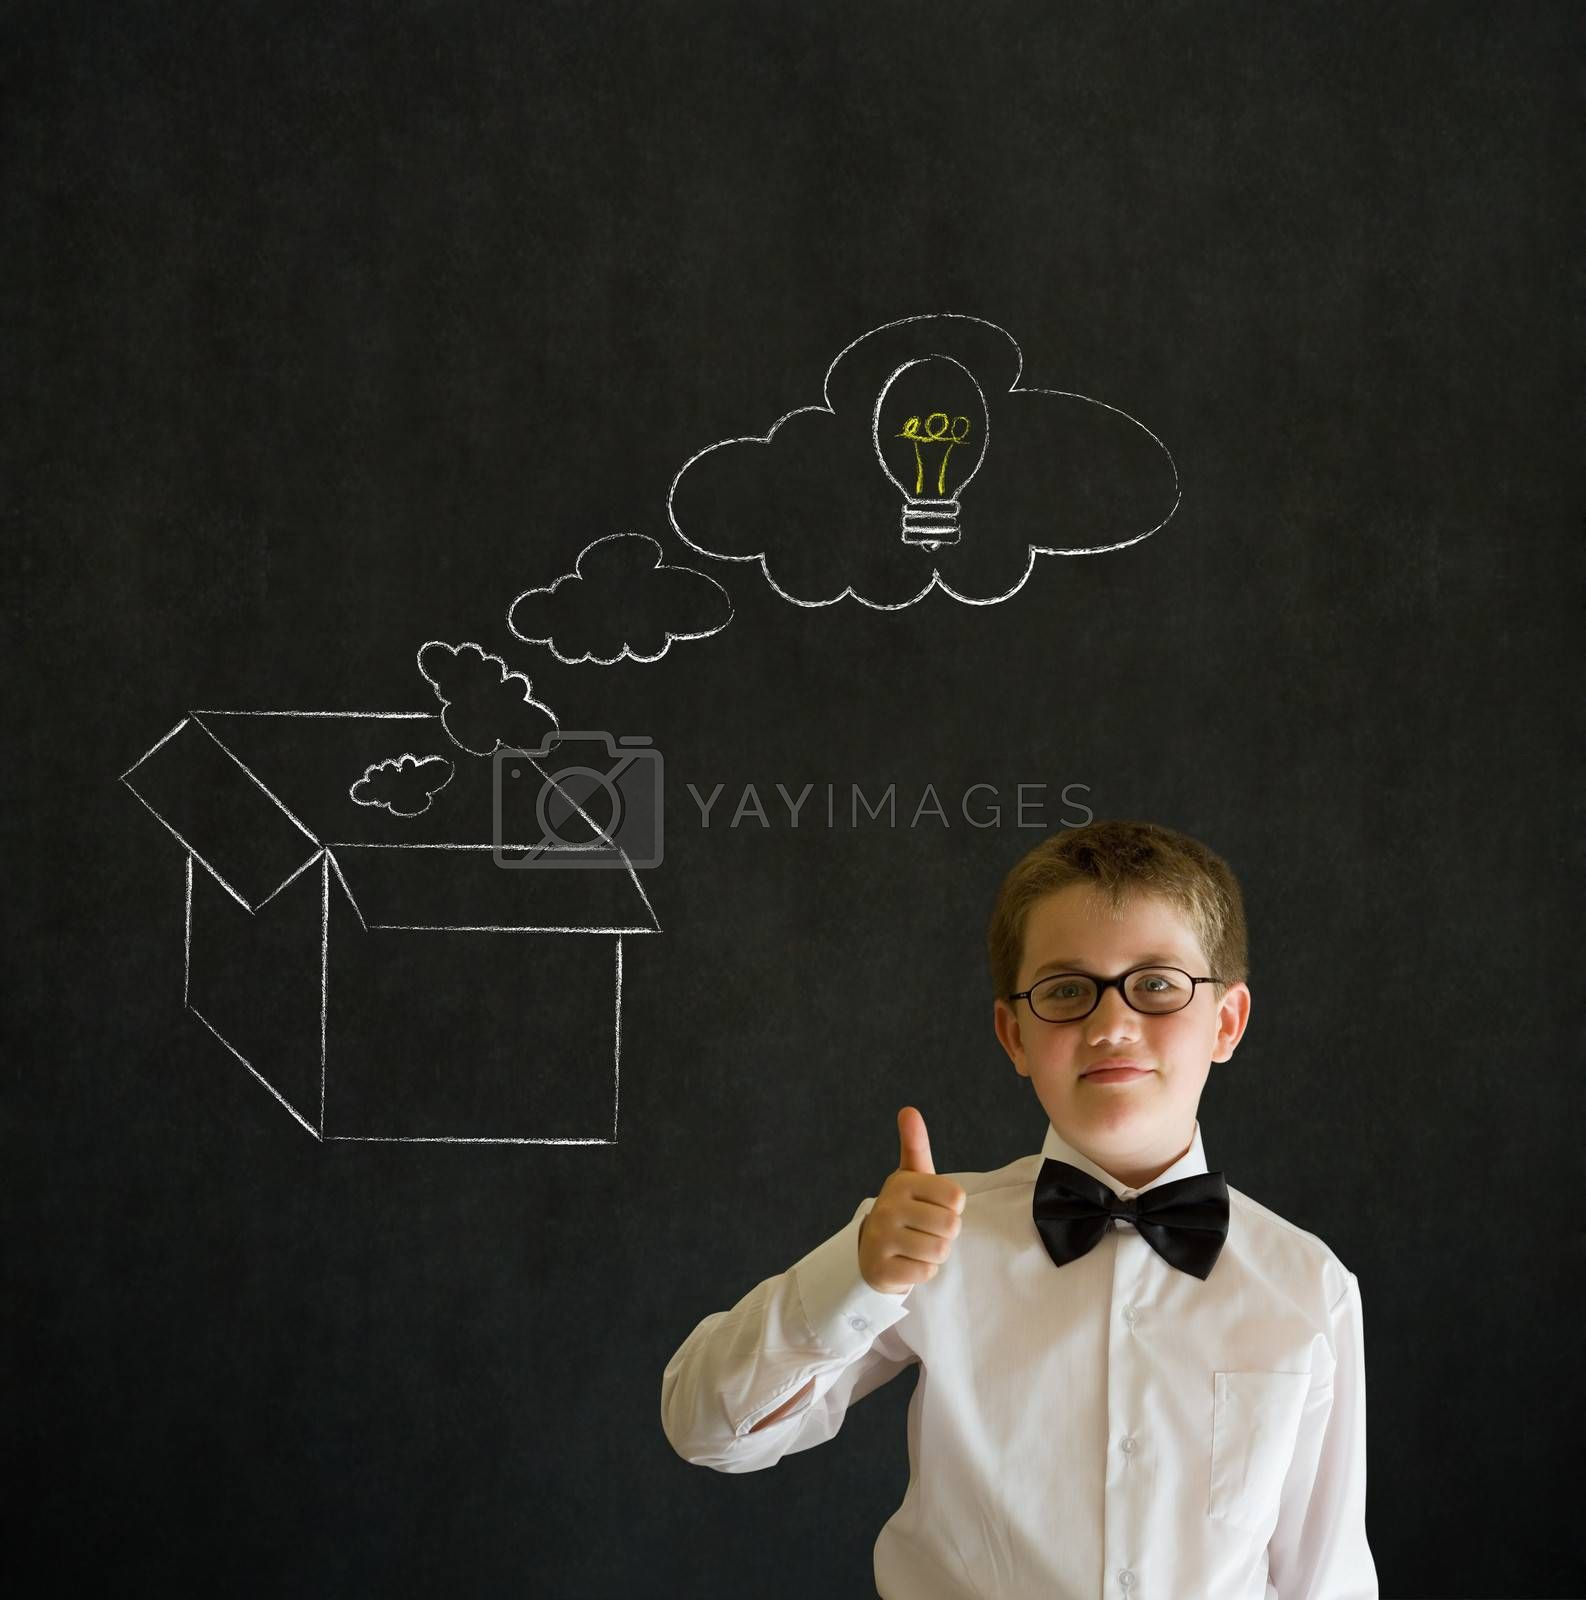 Royalty free image of Thumbs up boy business man with thinking out the box concept by alistaircotton